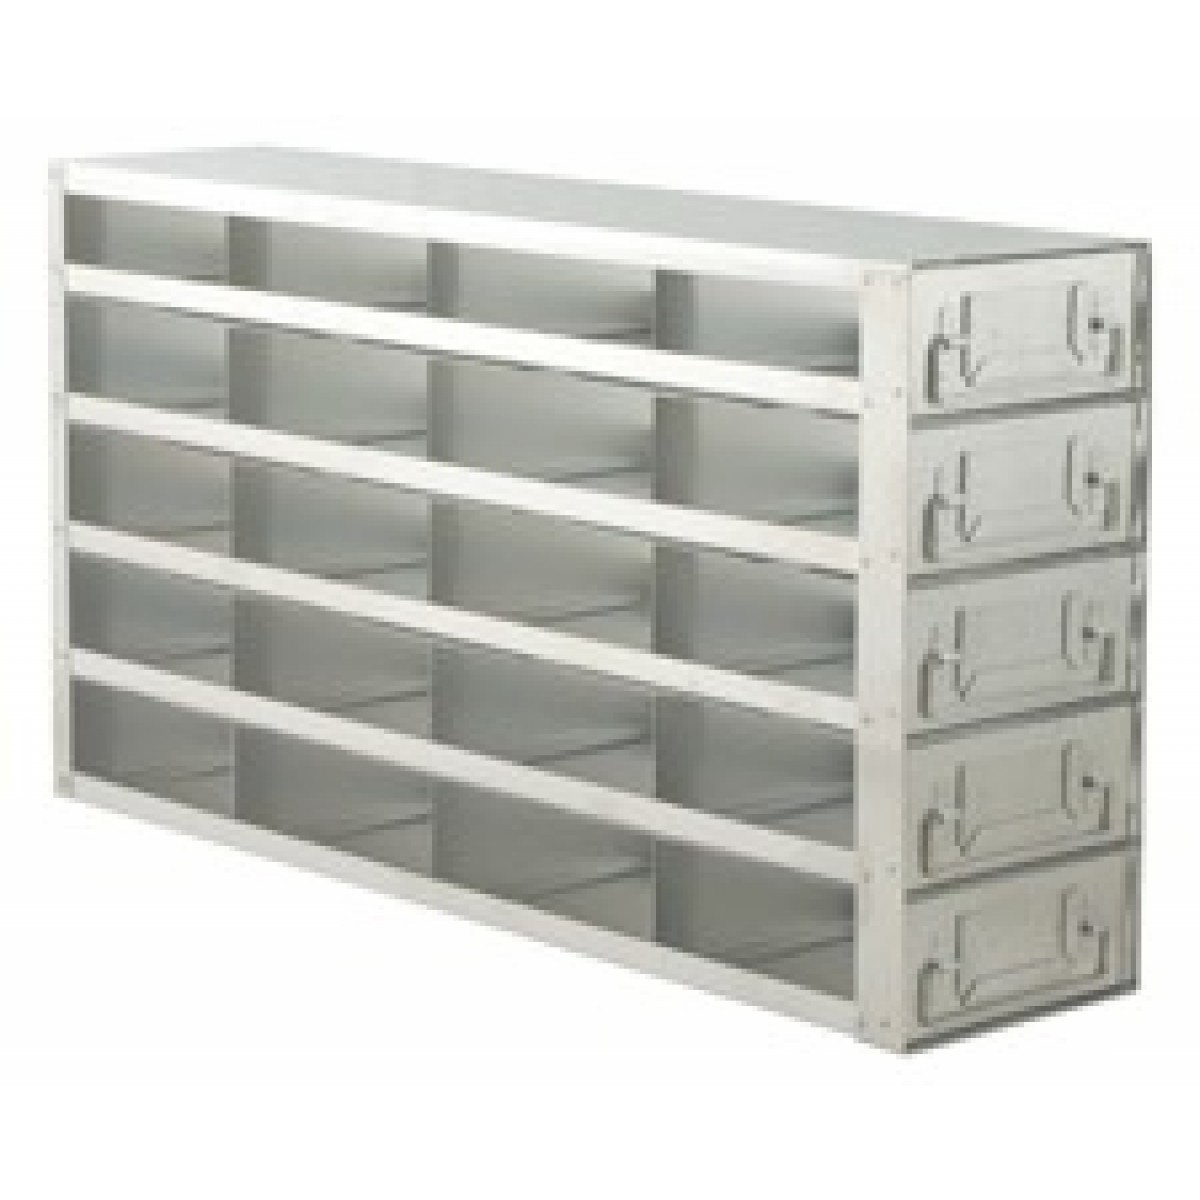 Upright Metal Freezer Rack For 2 Quot Boxes Drawer Style 20